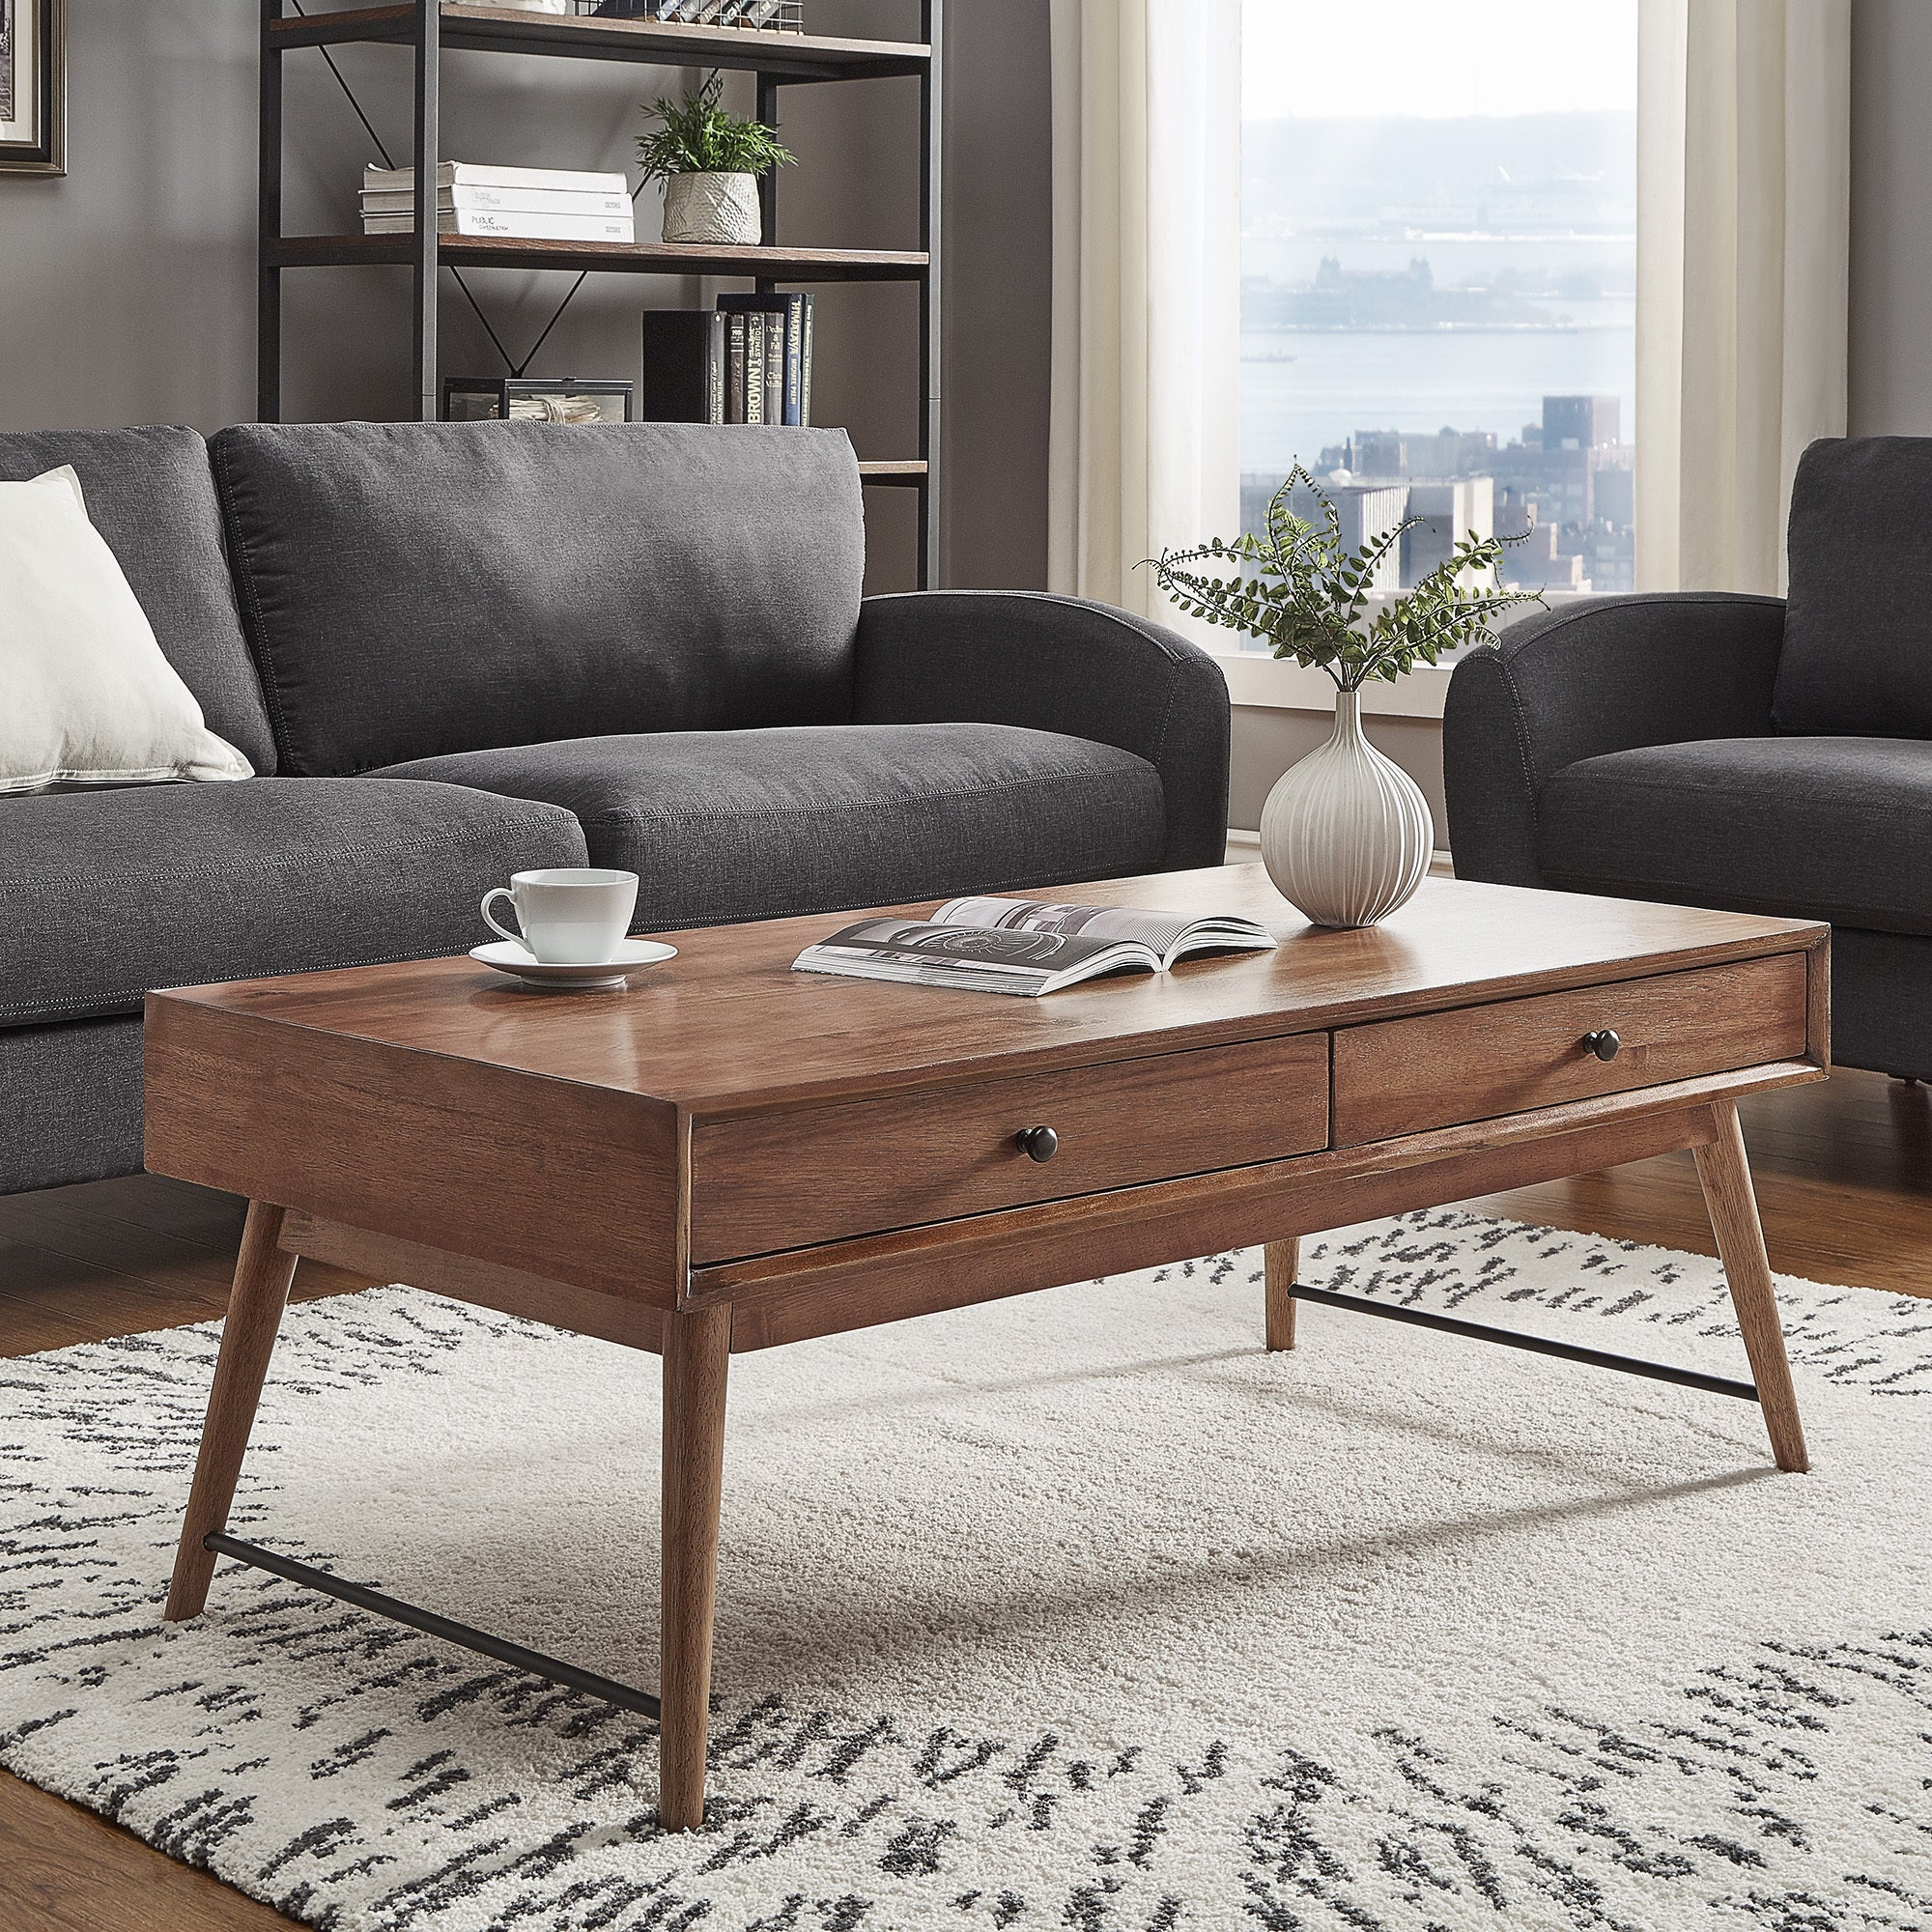 Aksel Brown Wood Accent Tables iNSPIRE Q Modern - Free Shipping Today -  Overstock.com - 20742348